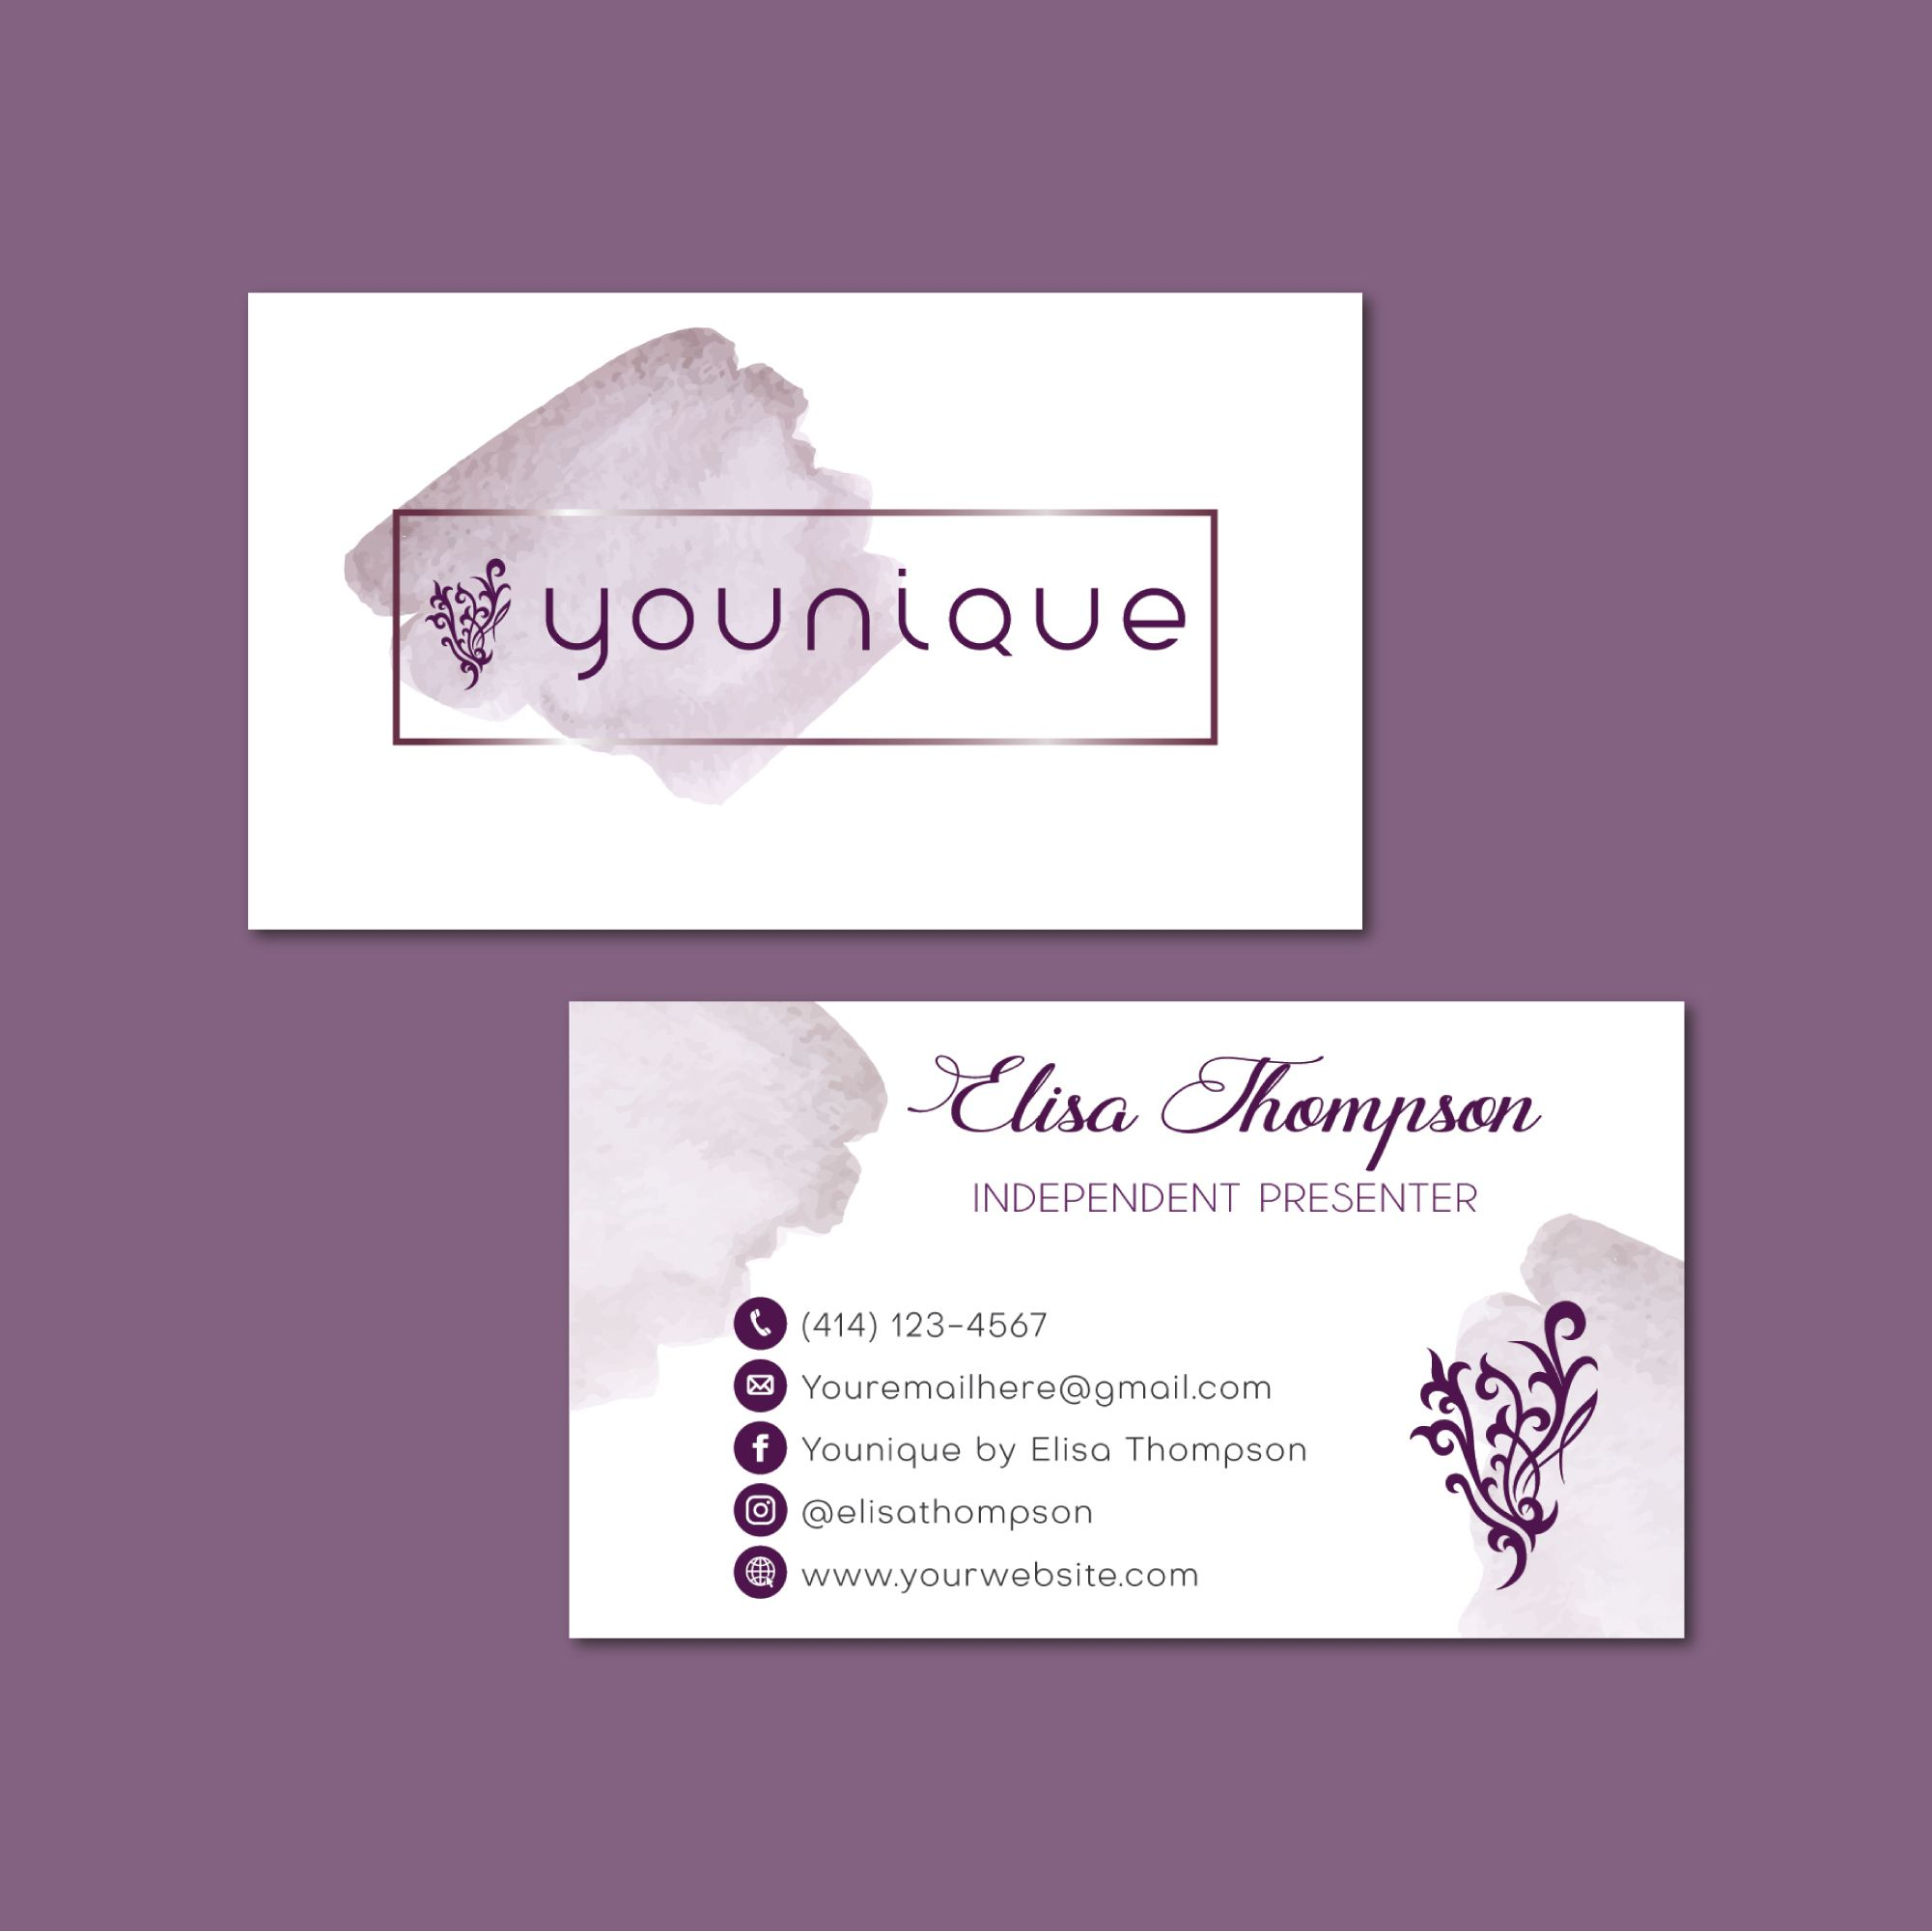 Watercolor Personalized Younique Business Cards Younique Printable Cards Custom Business Card Younique Business Cards Yq14 Younique Business Cards Younique Business Custom Business Cards